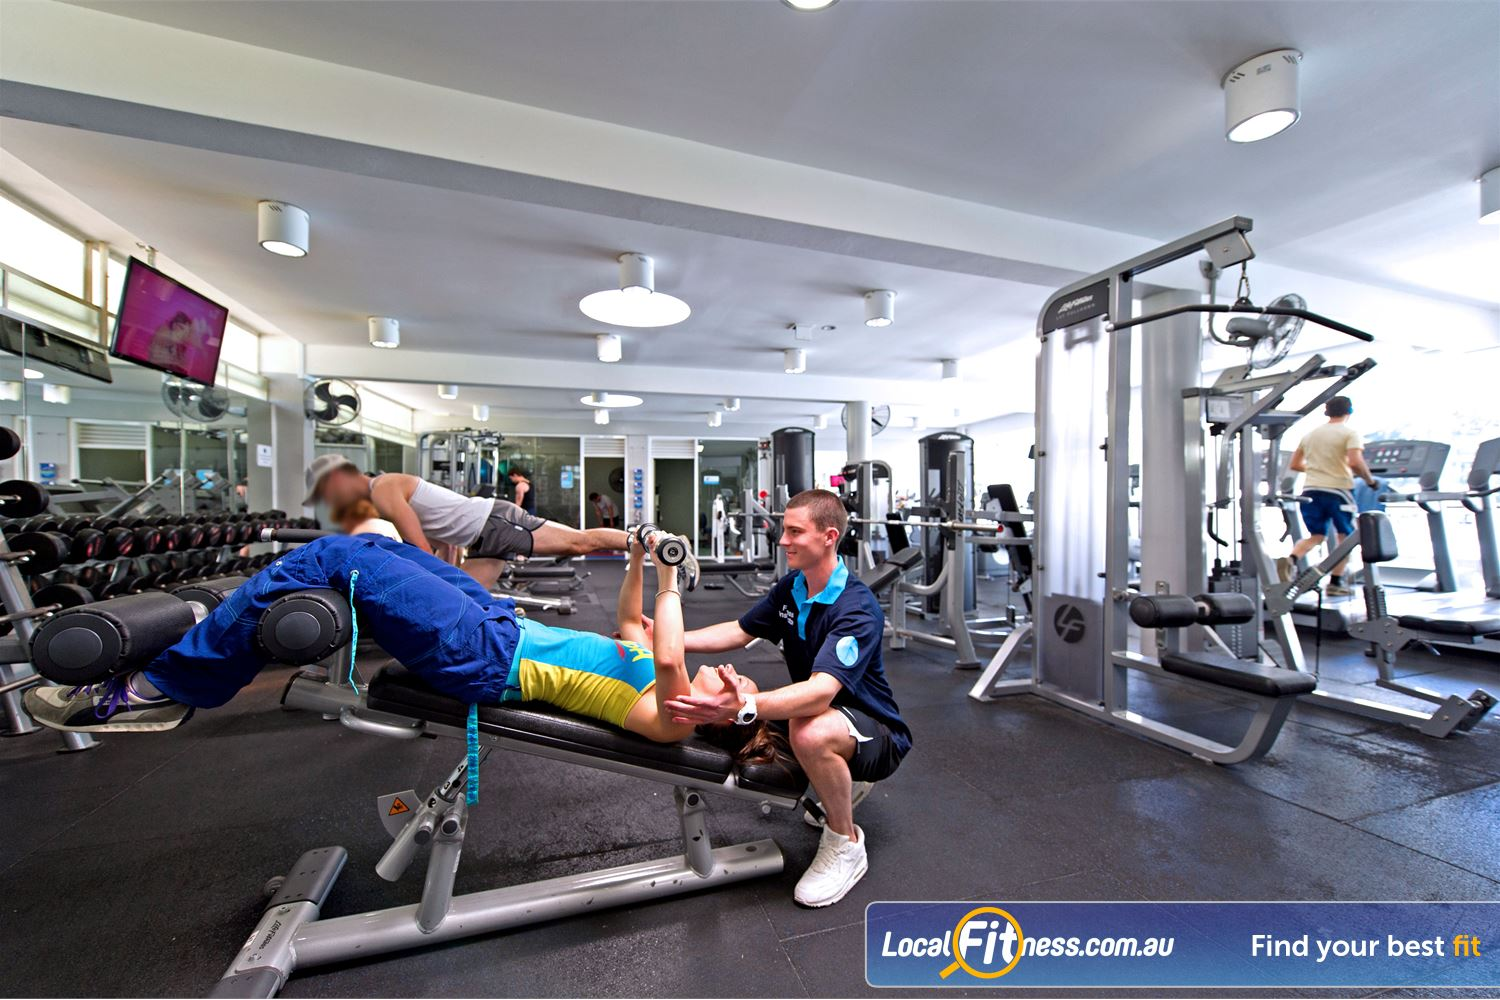 Victoria Park Pool Near Marrickville Our gym instructors can teach you the benefits of free-weight training.